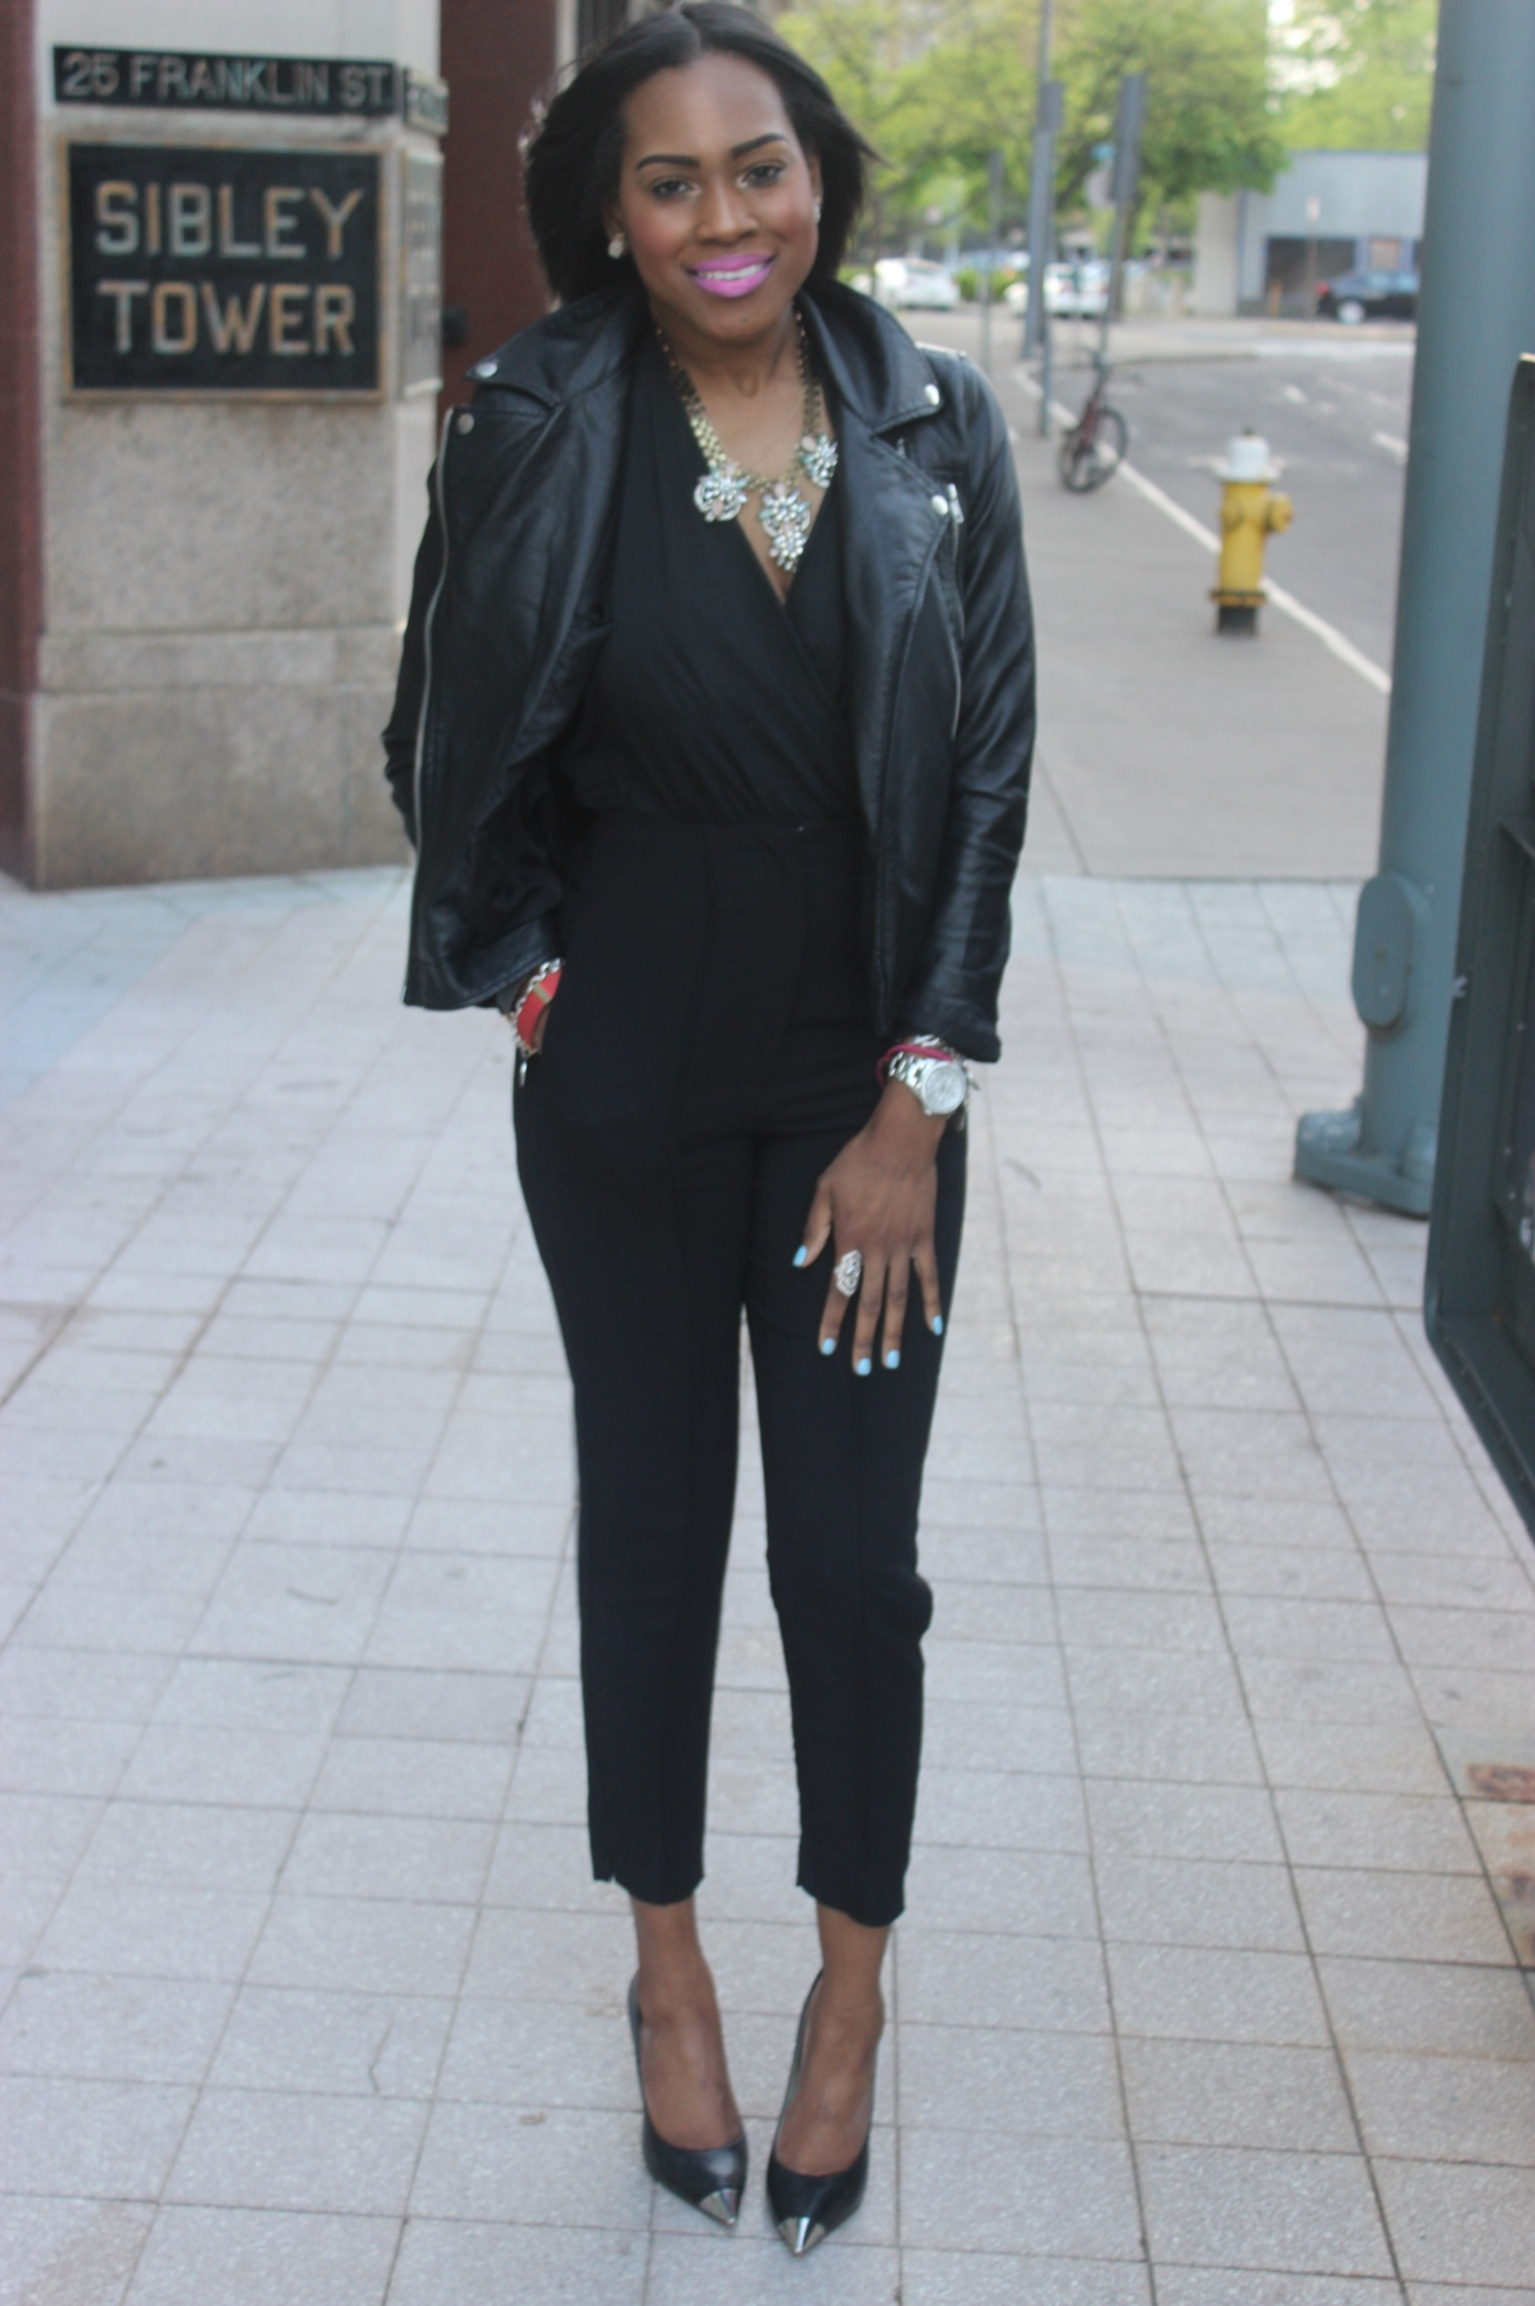 Style-files-with-Pretty-Price-All-Black-OOTD-Black-High-Waist-Pants-Victoria-Secret-Body-Suit-Michael-Kors-Silver-Cap-2